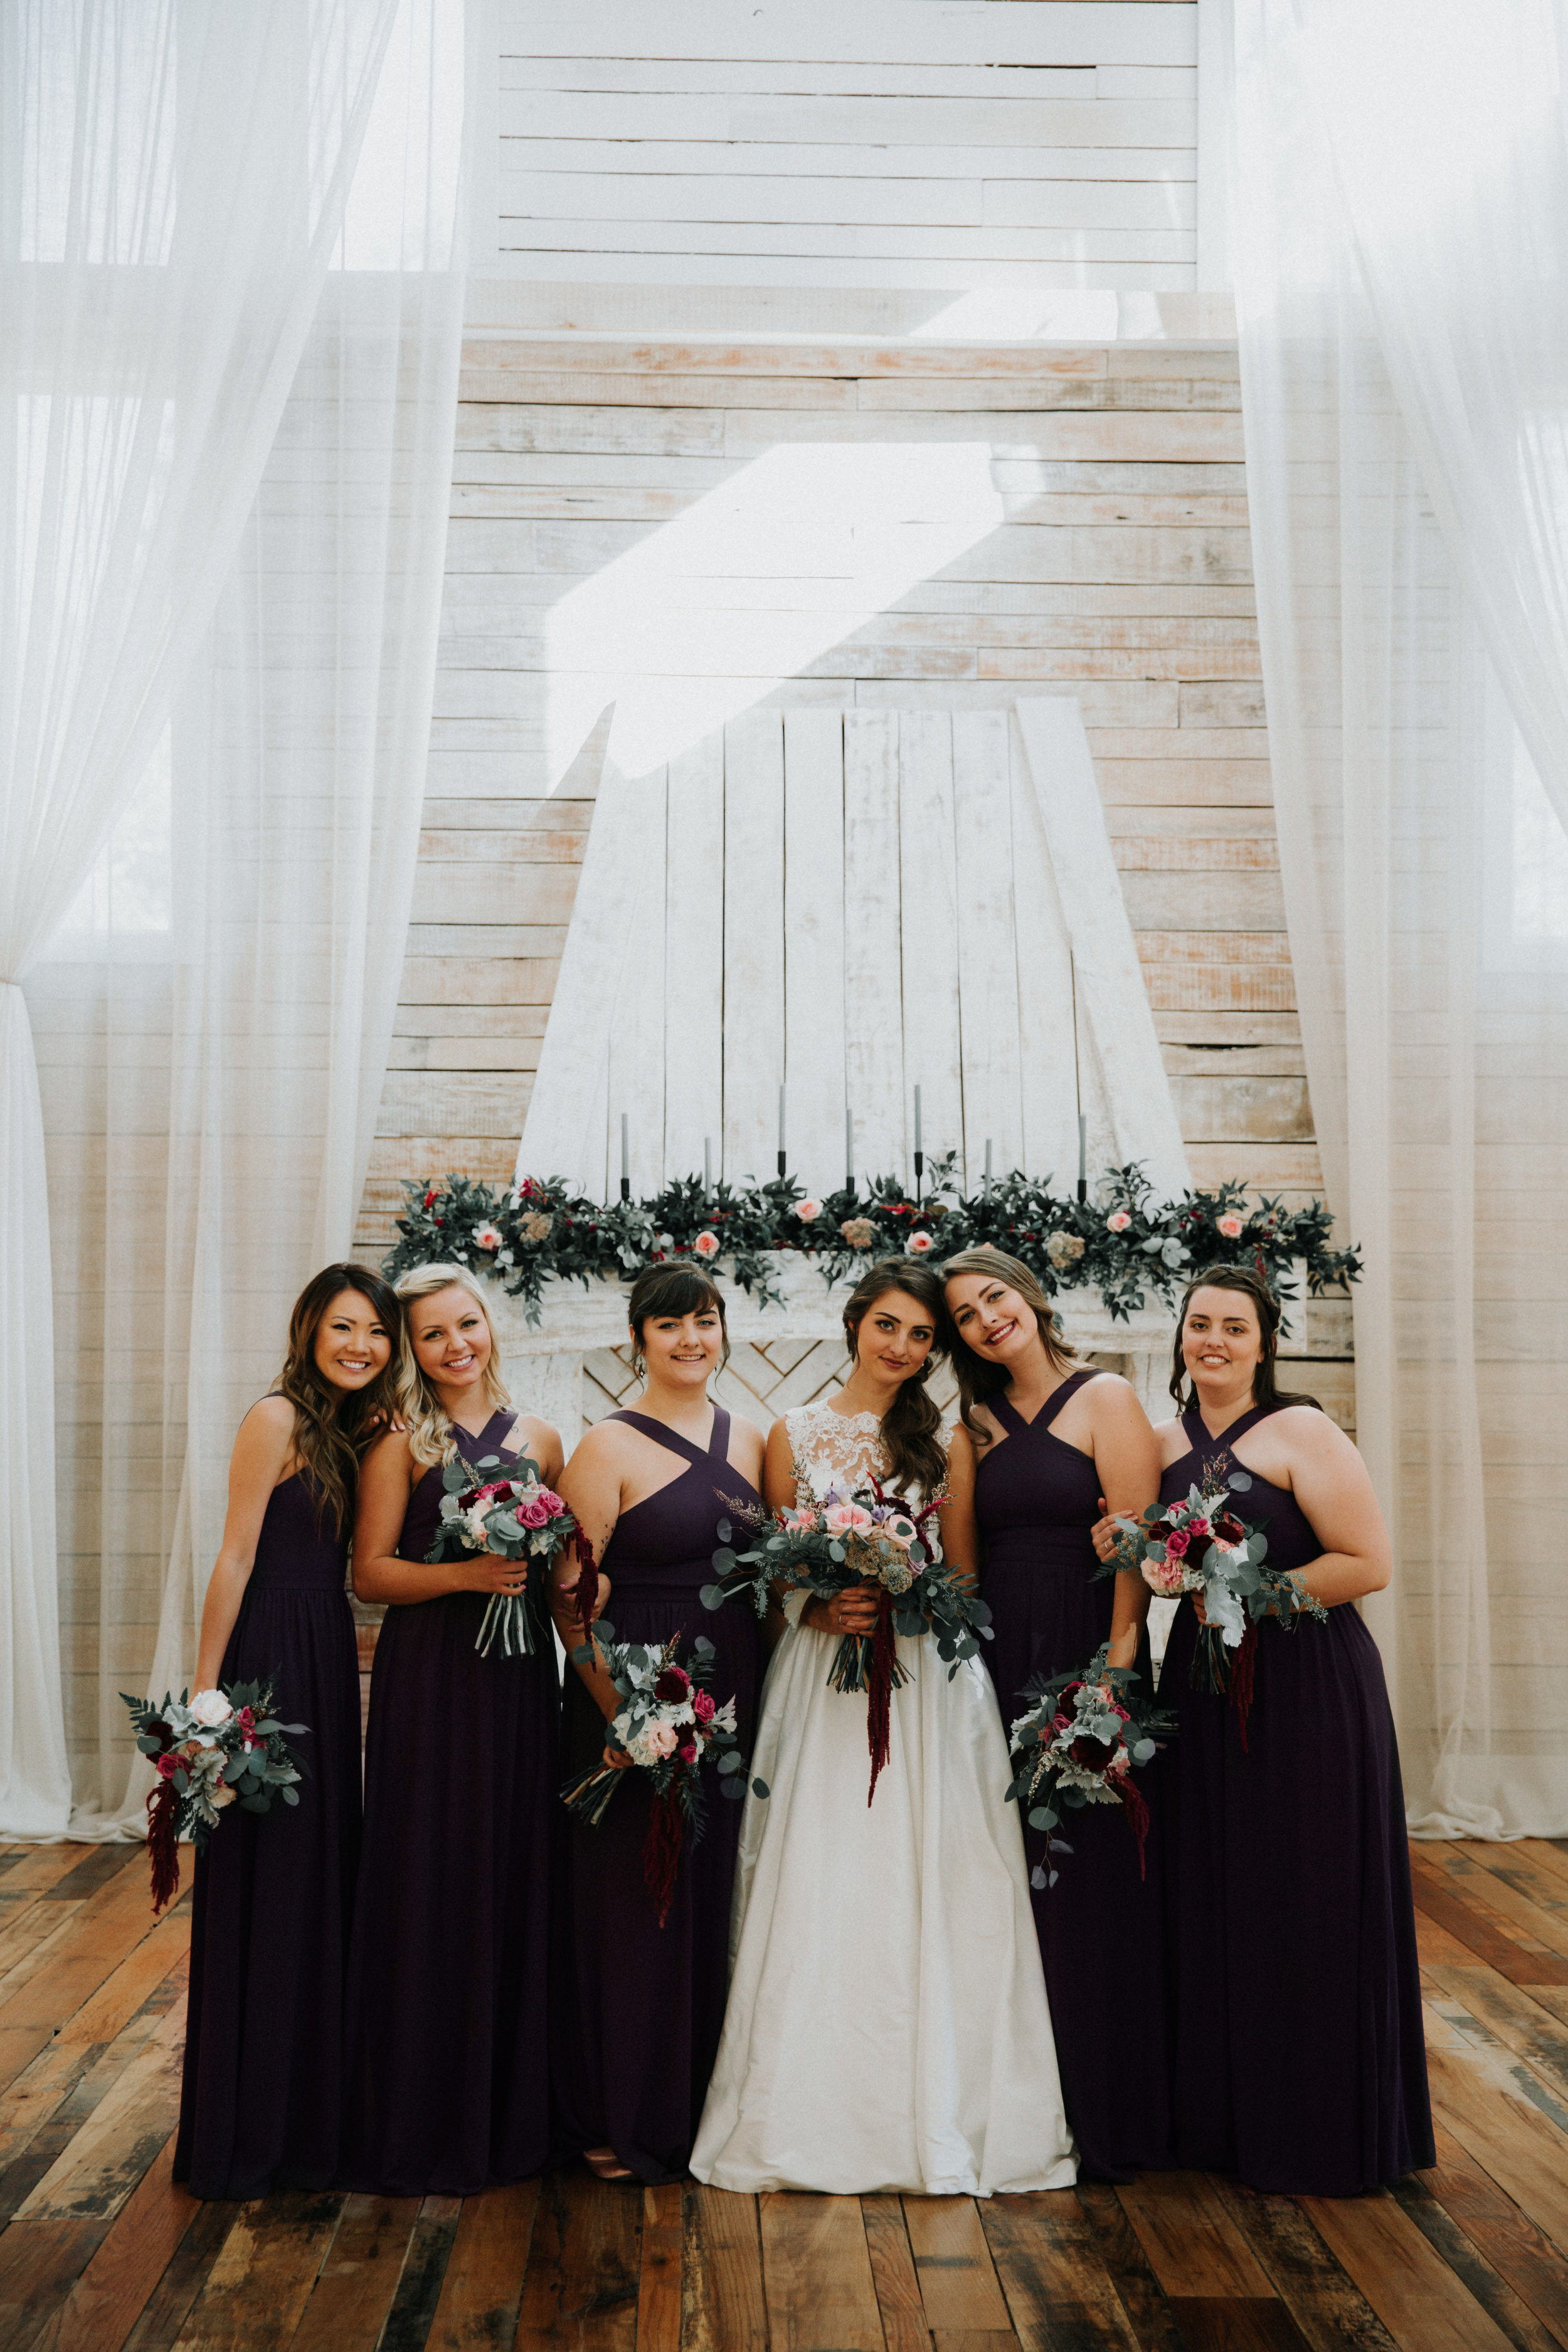 Black Bridesmaid Dresses - Athens, Tennessee Barn Wedding -- The Overwhelmed Bride Wedding Blog